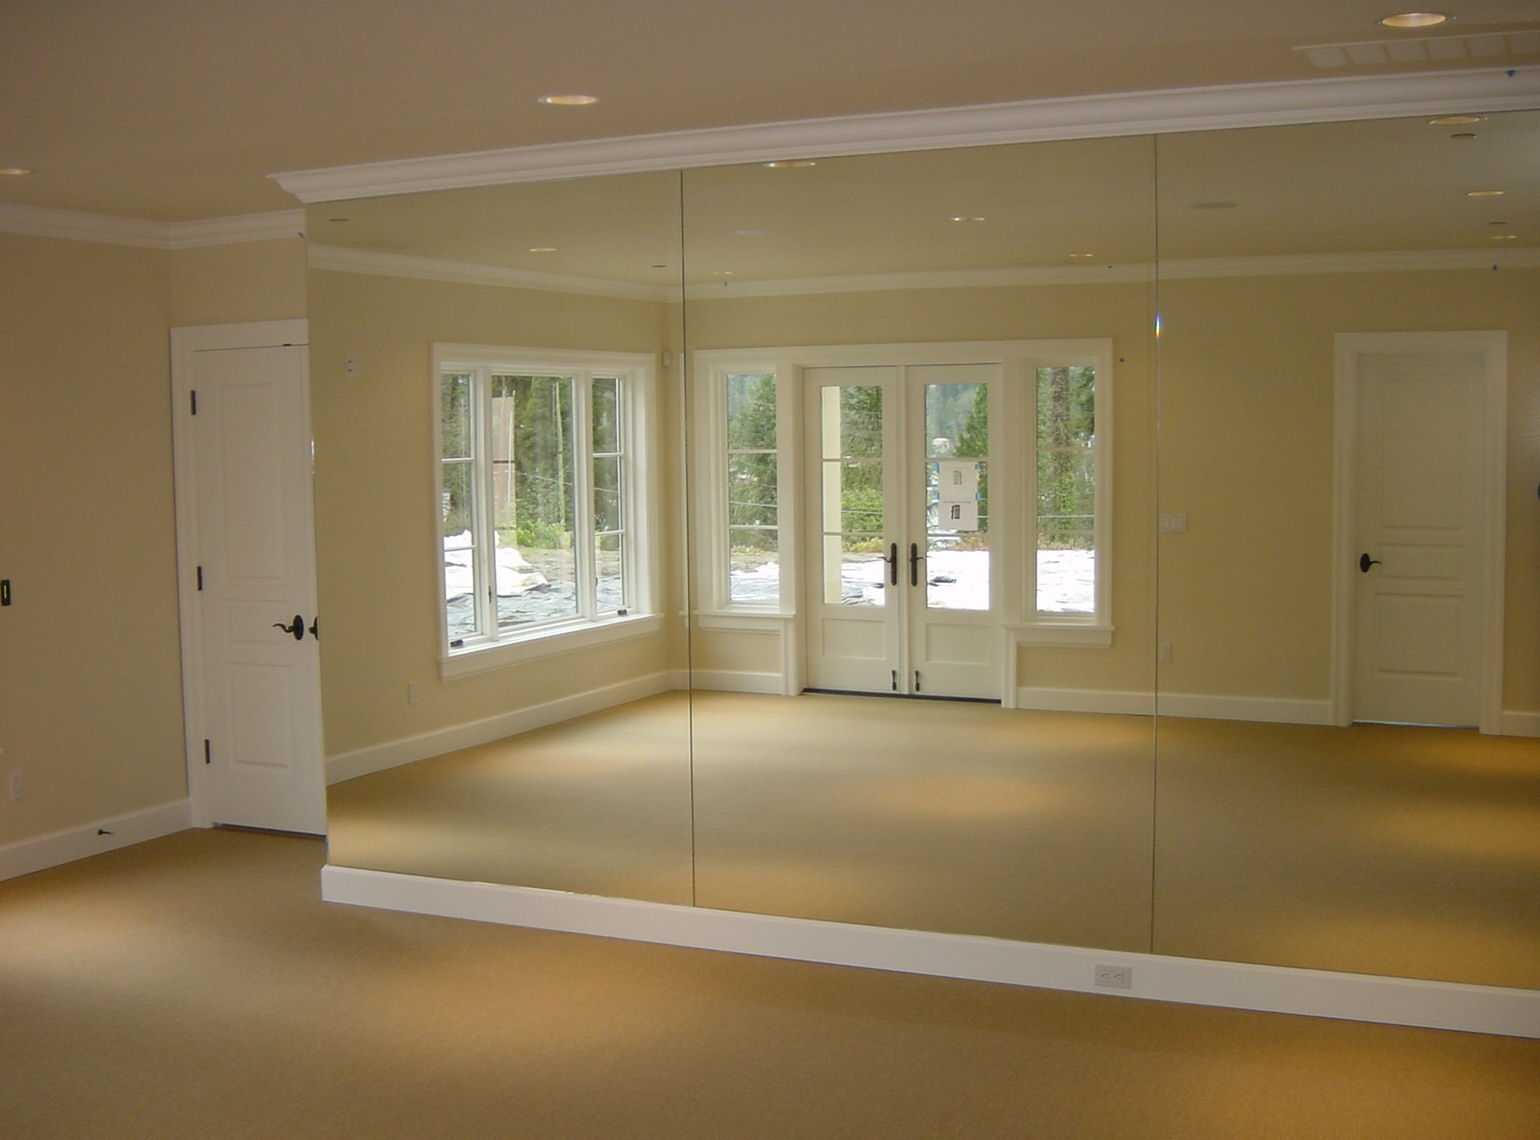 Great mirror wall full image for wall to wall mirror 92 trendy interior or stunning ideas sfxkpax